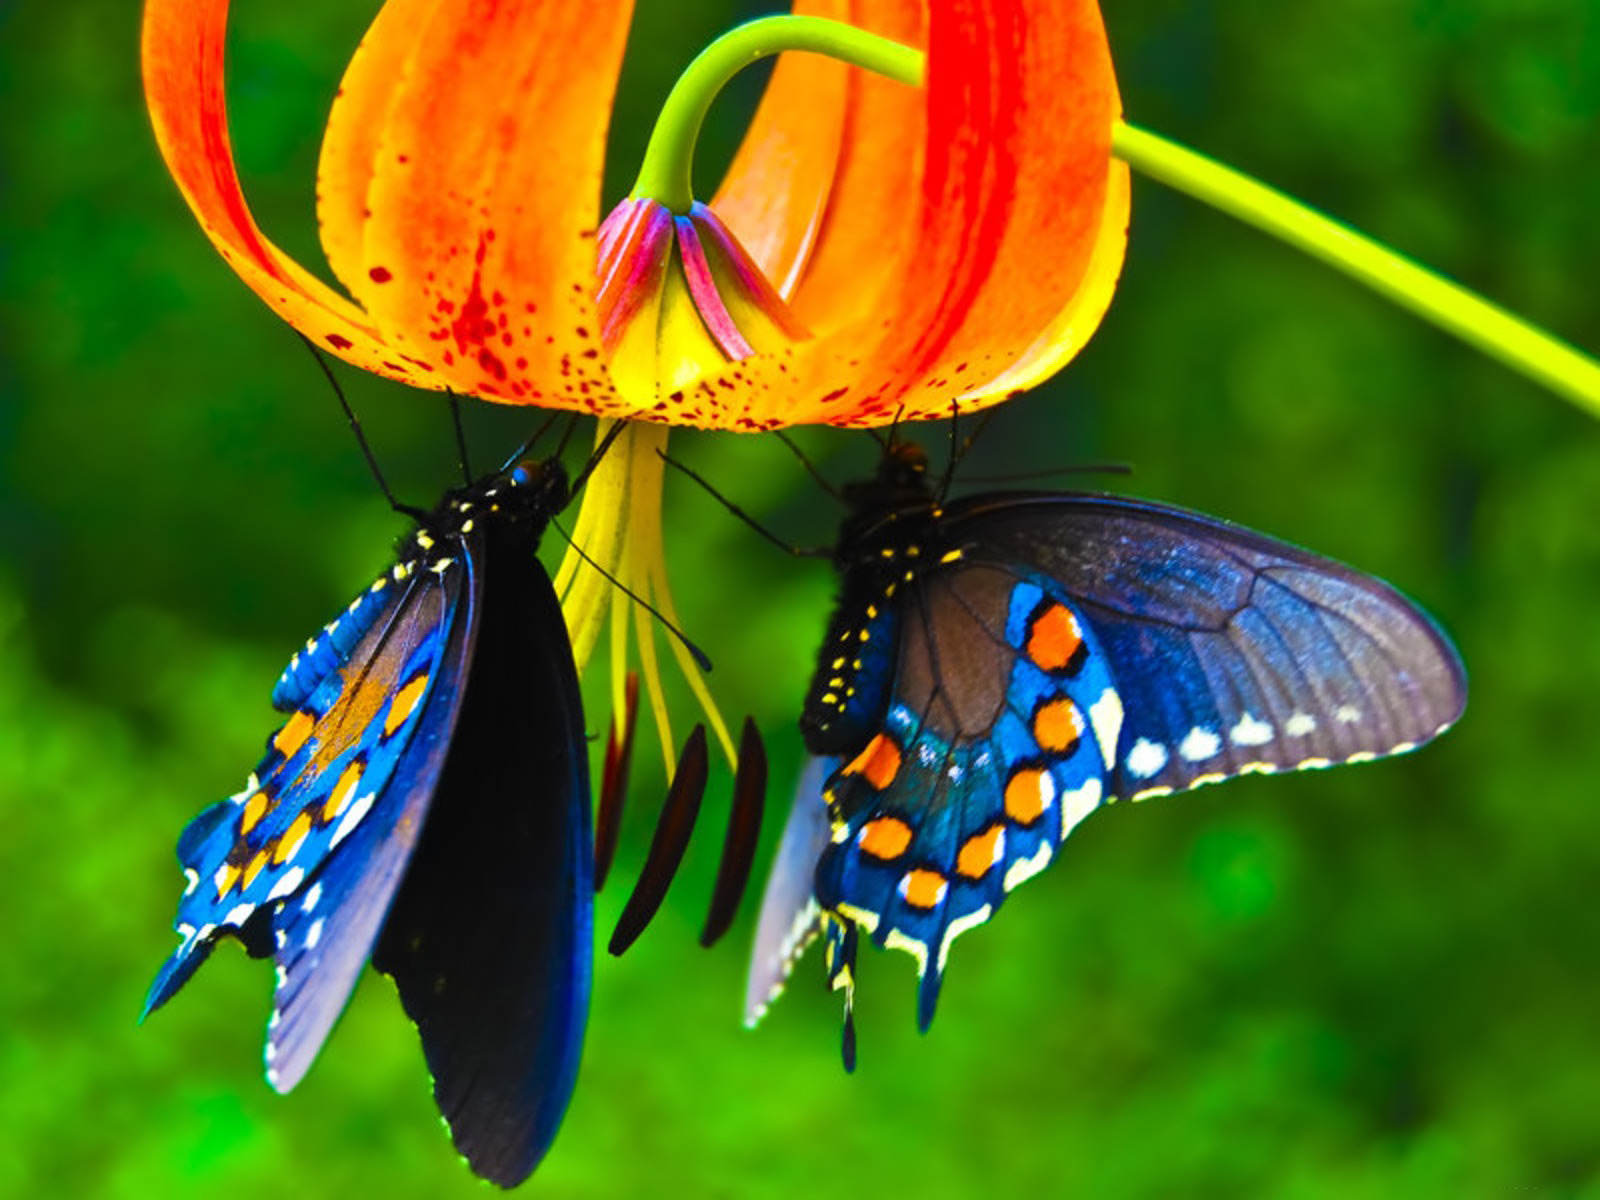 Description: King Priamos Butterfly Wallpaper is a hi res Wallpaper ...